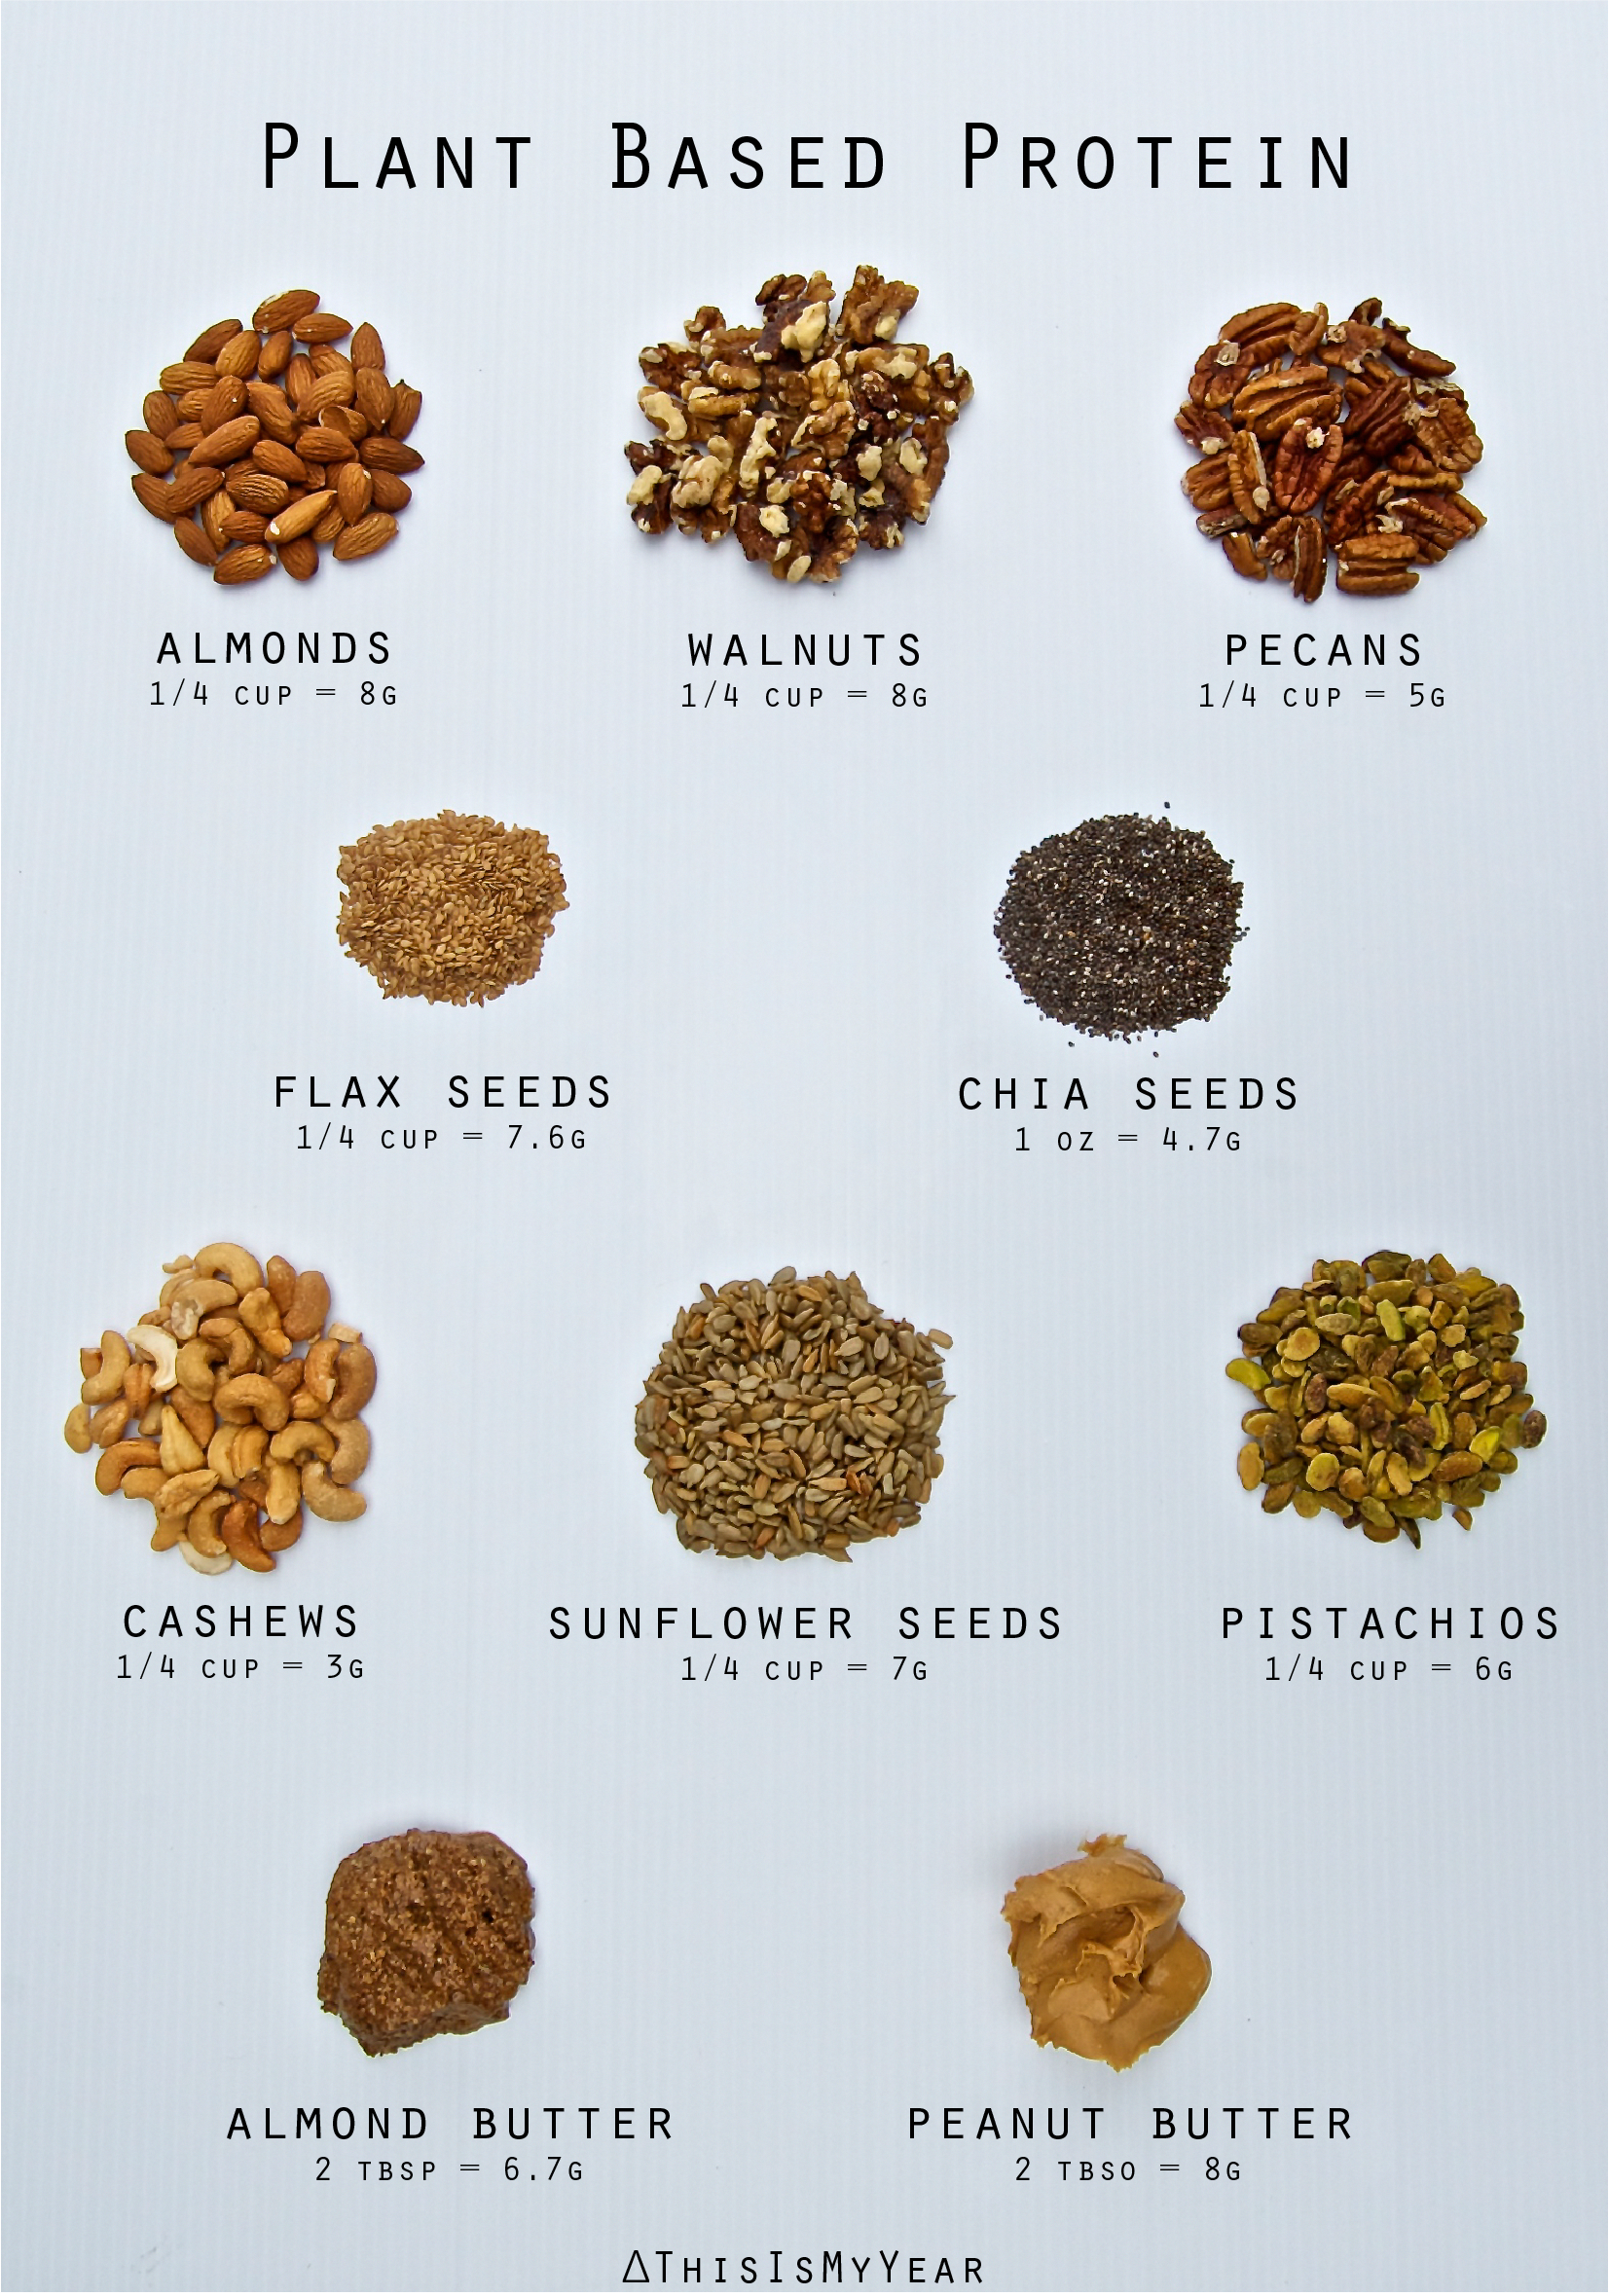 Nuts and seeds are high in Plant Based Protein #thisismyyear